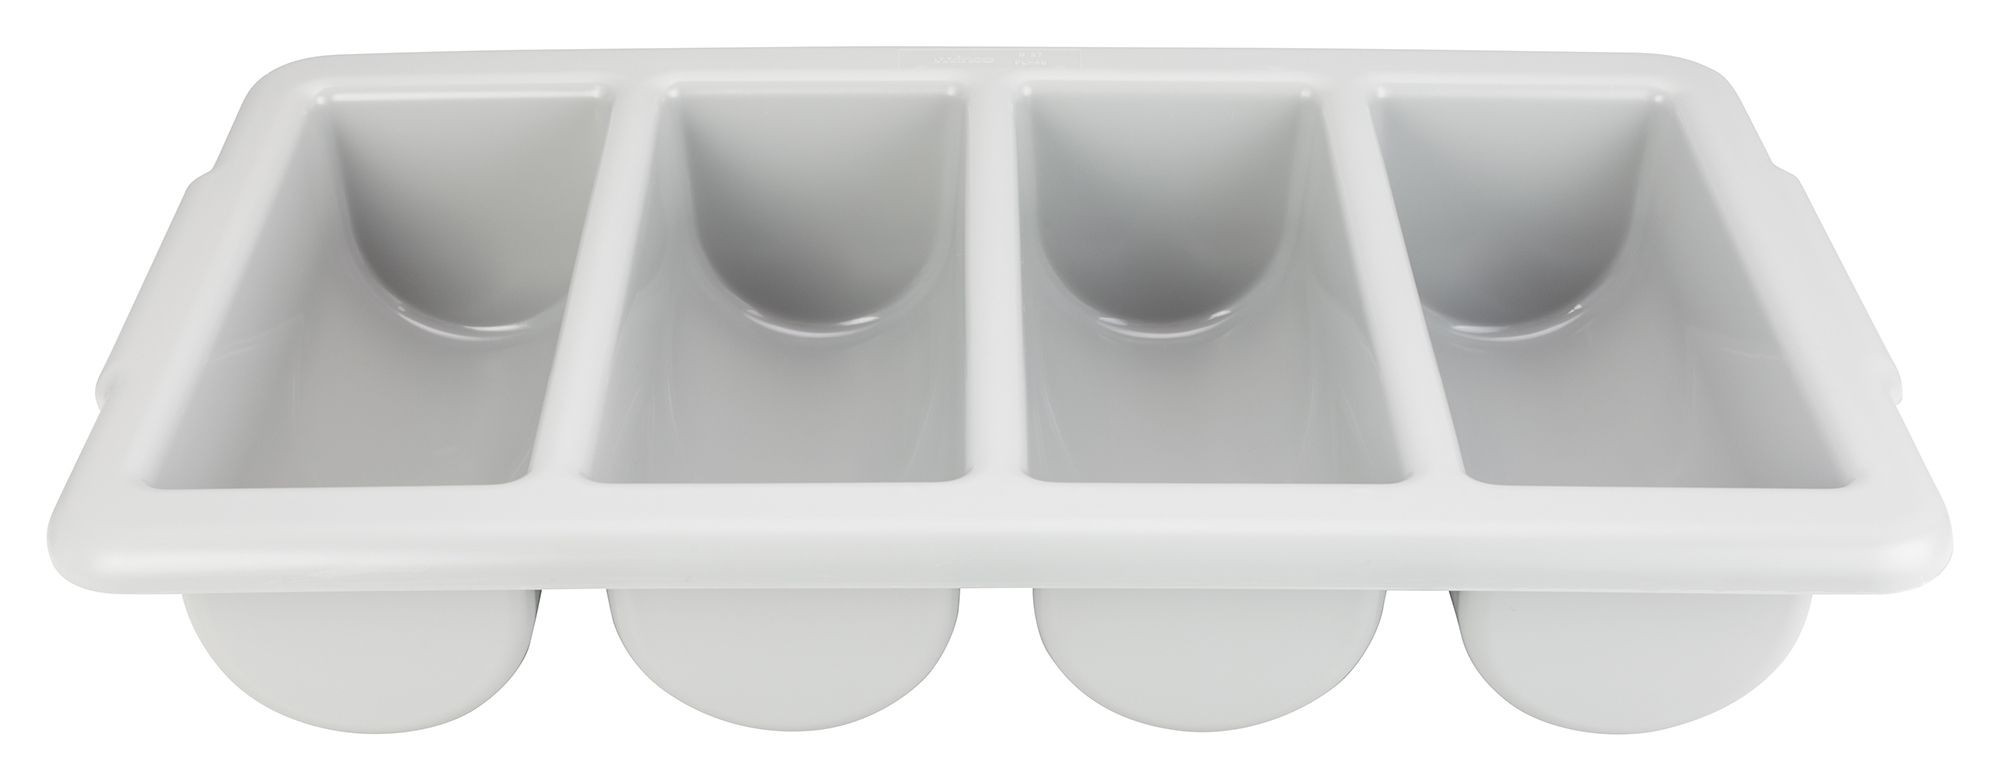 Winco PL-4B Four-Compartment Cutlery Bin